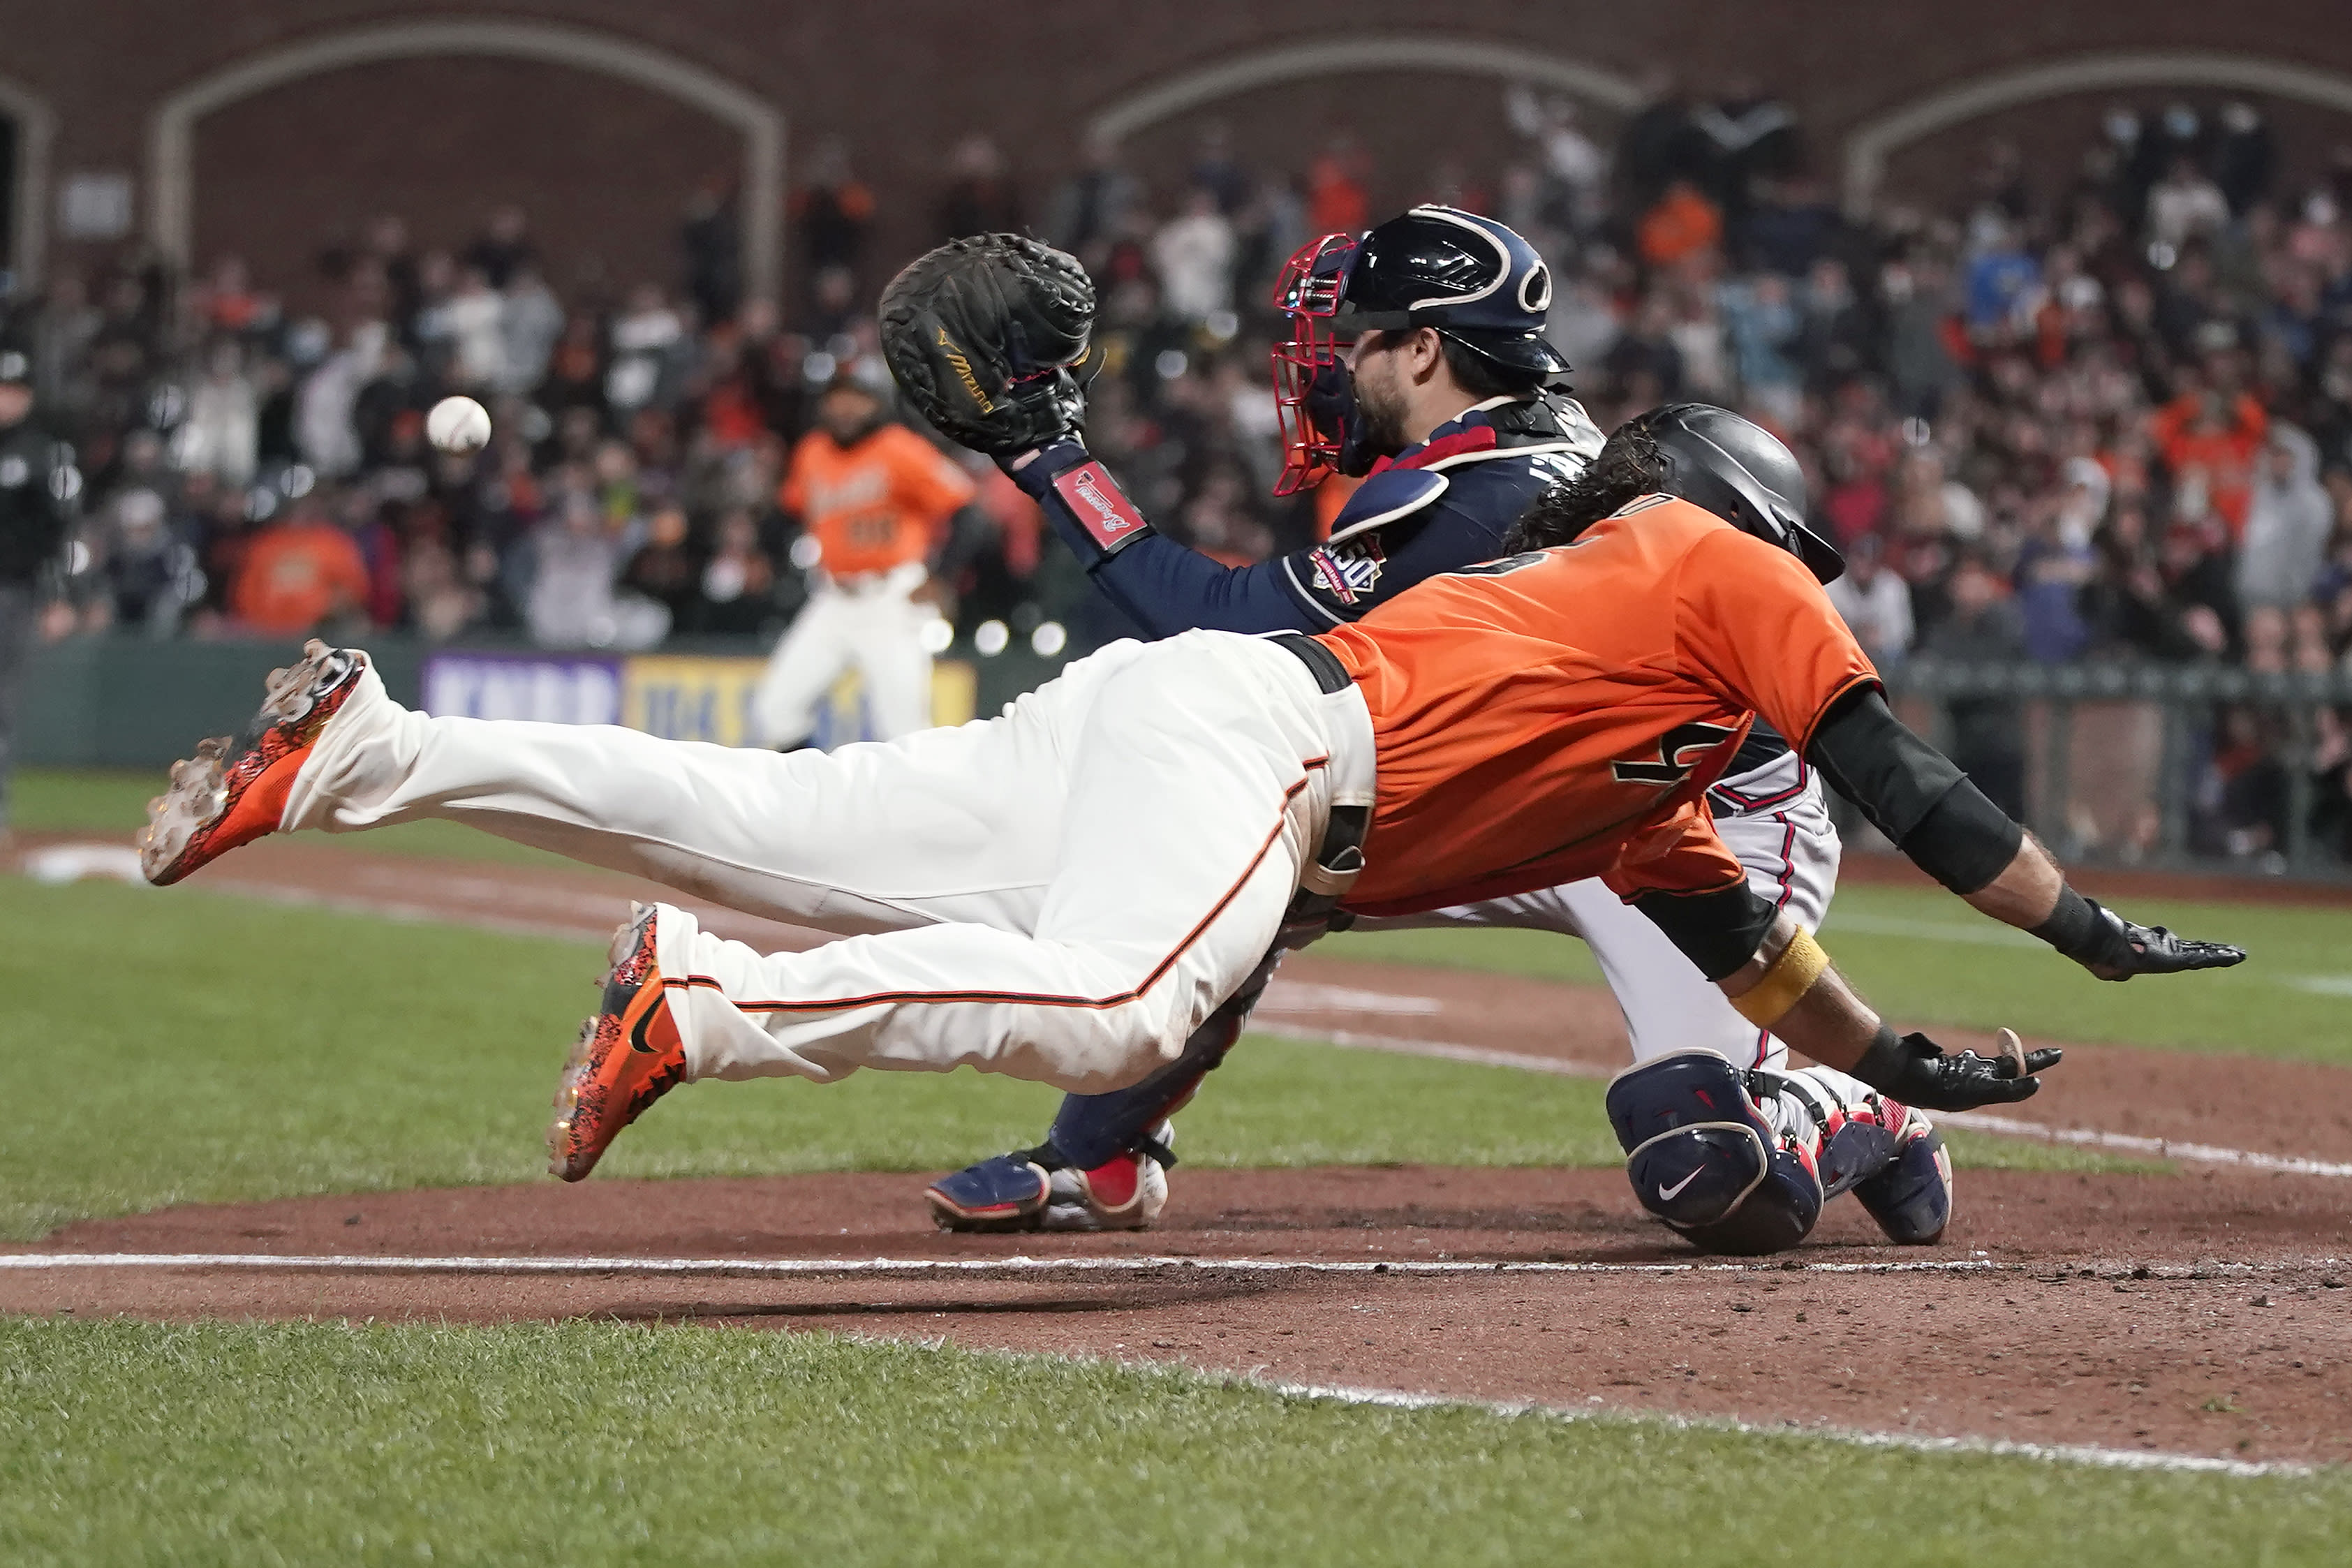 Pinch-hitter pitcher Gausman sac fly in 11th, SF tops Braves